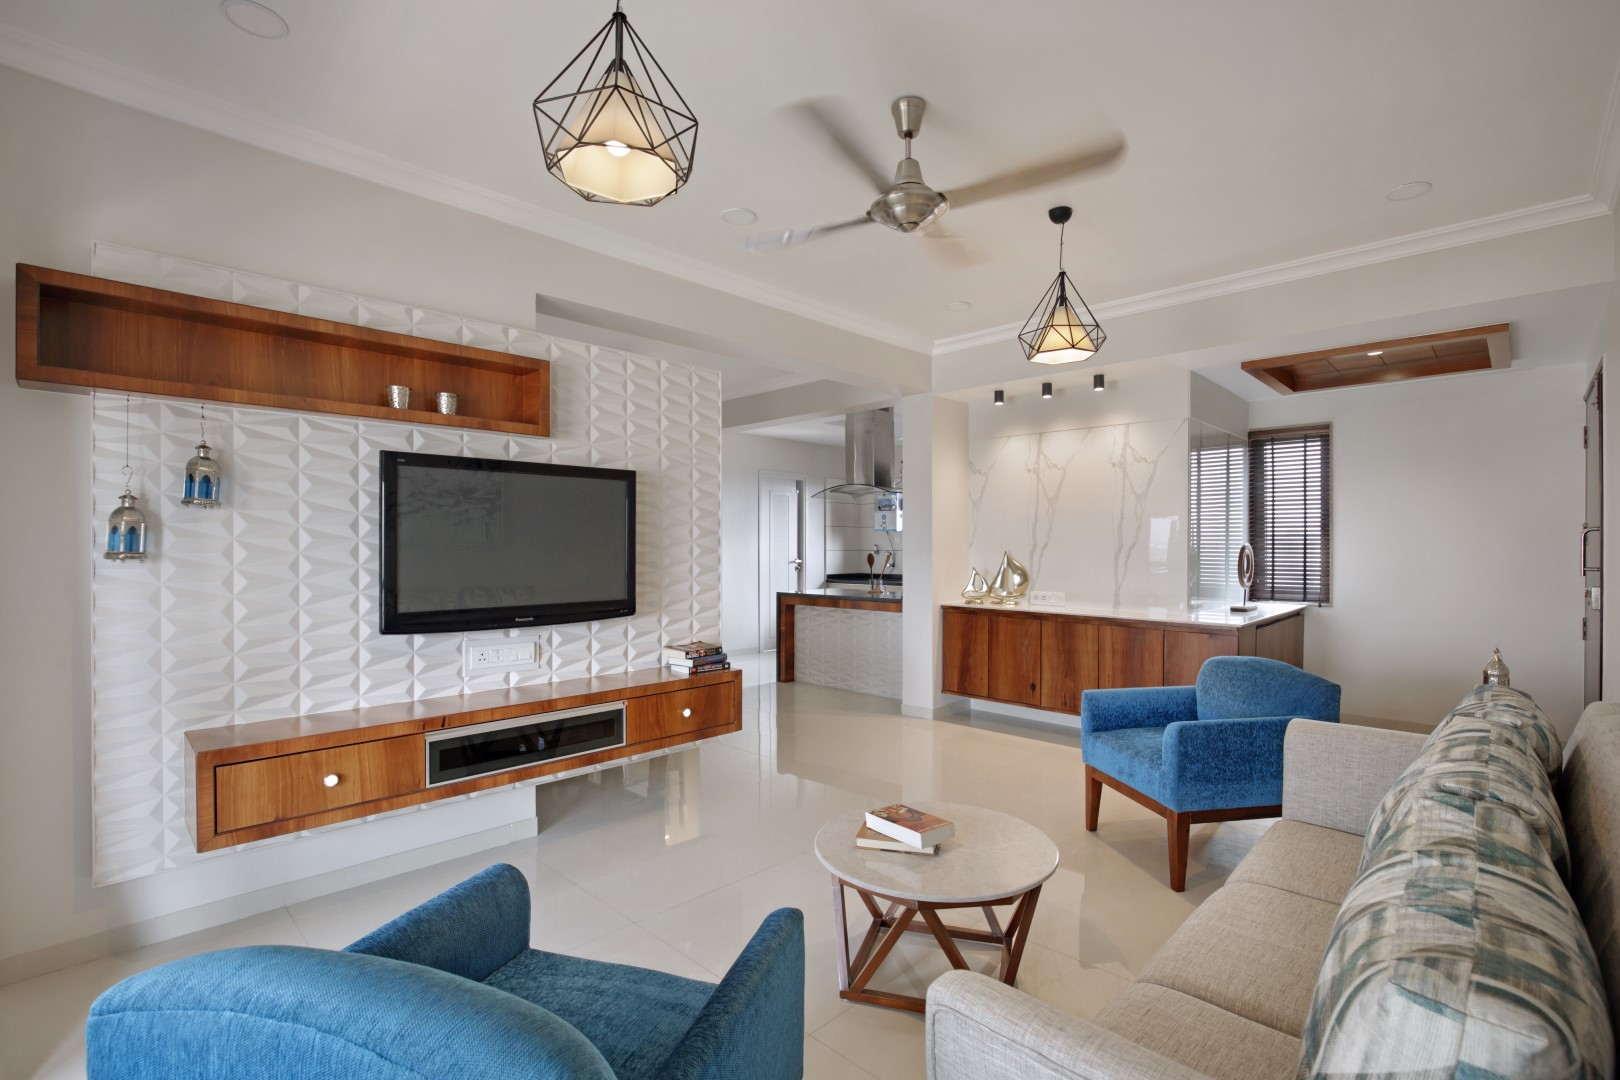 2 bhk interior design studio 7 designs the architects for Interior designs for flats